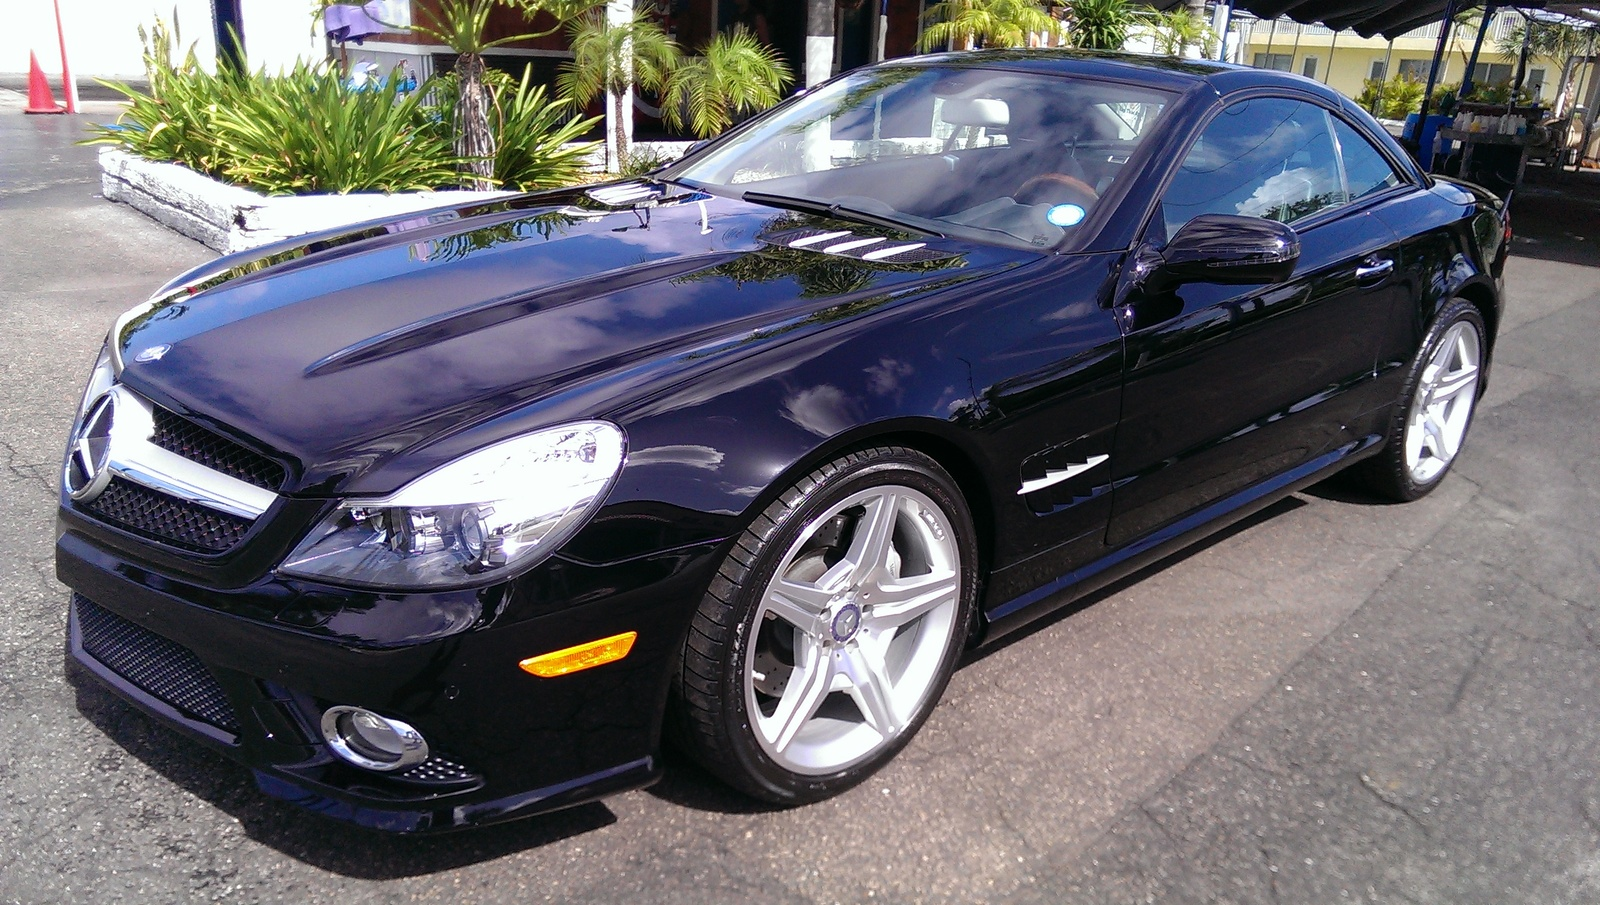 2012 mercedes benz sl class pictures cargurus for 2012 mercedes benz sl550